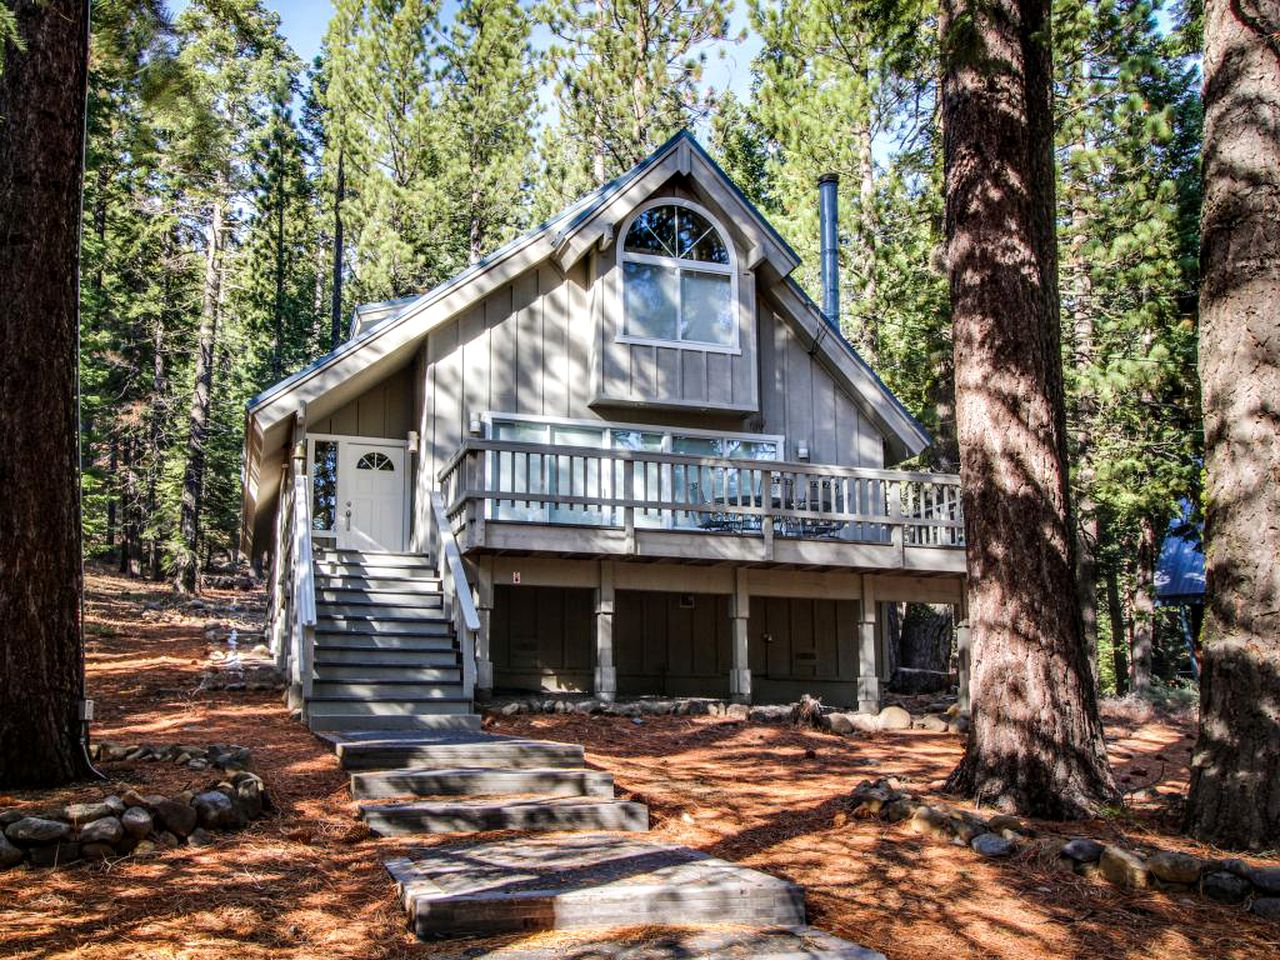 Cabins (Tahoe City, California, United States)